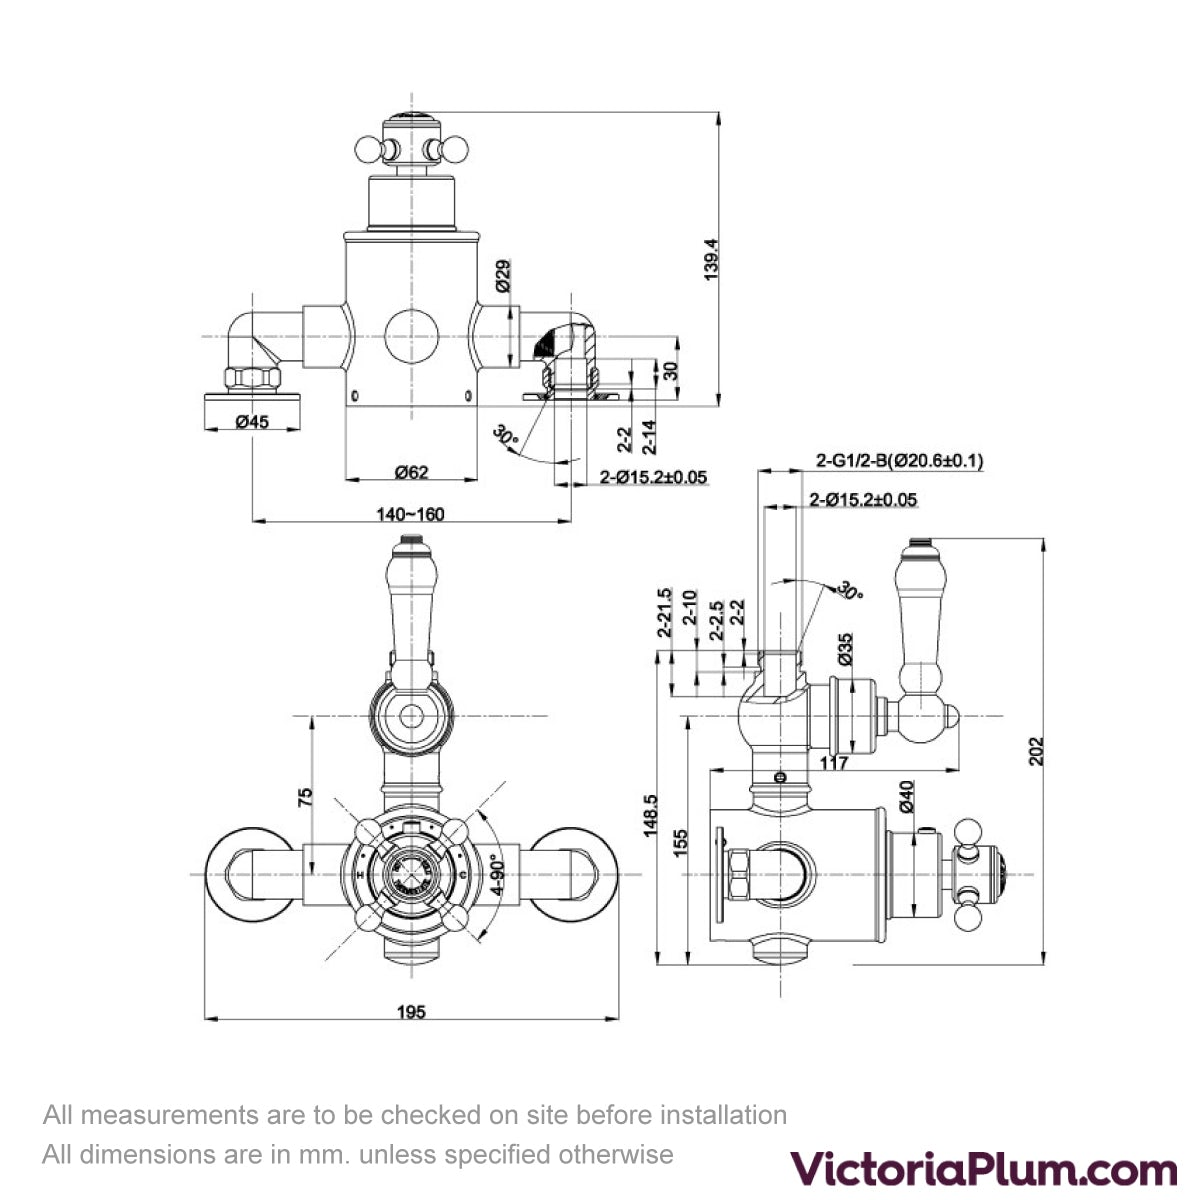 Dimensions for The Bath Co. Winchester exposed shower valve with top outlet